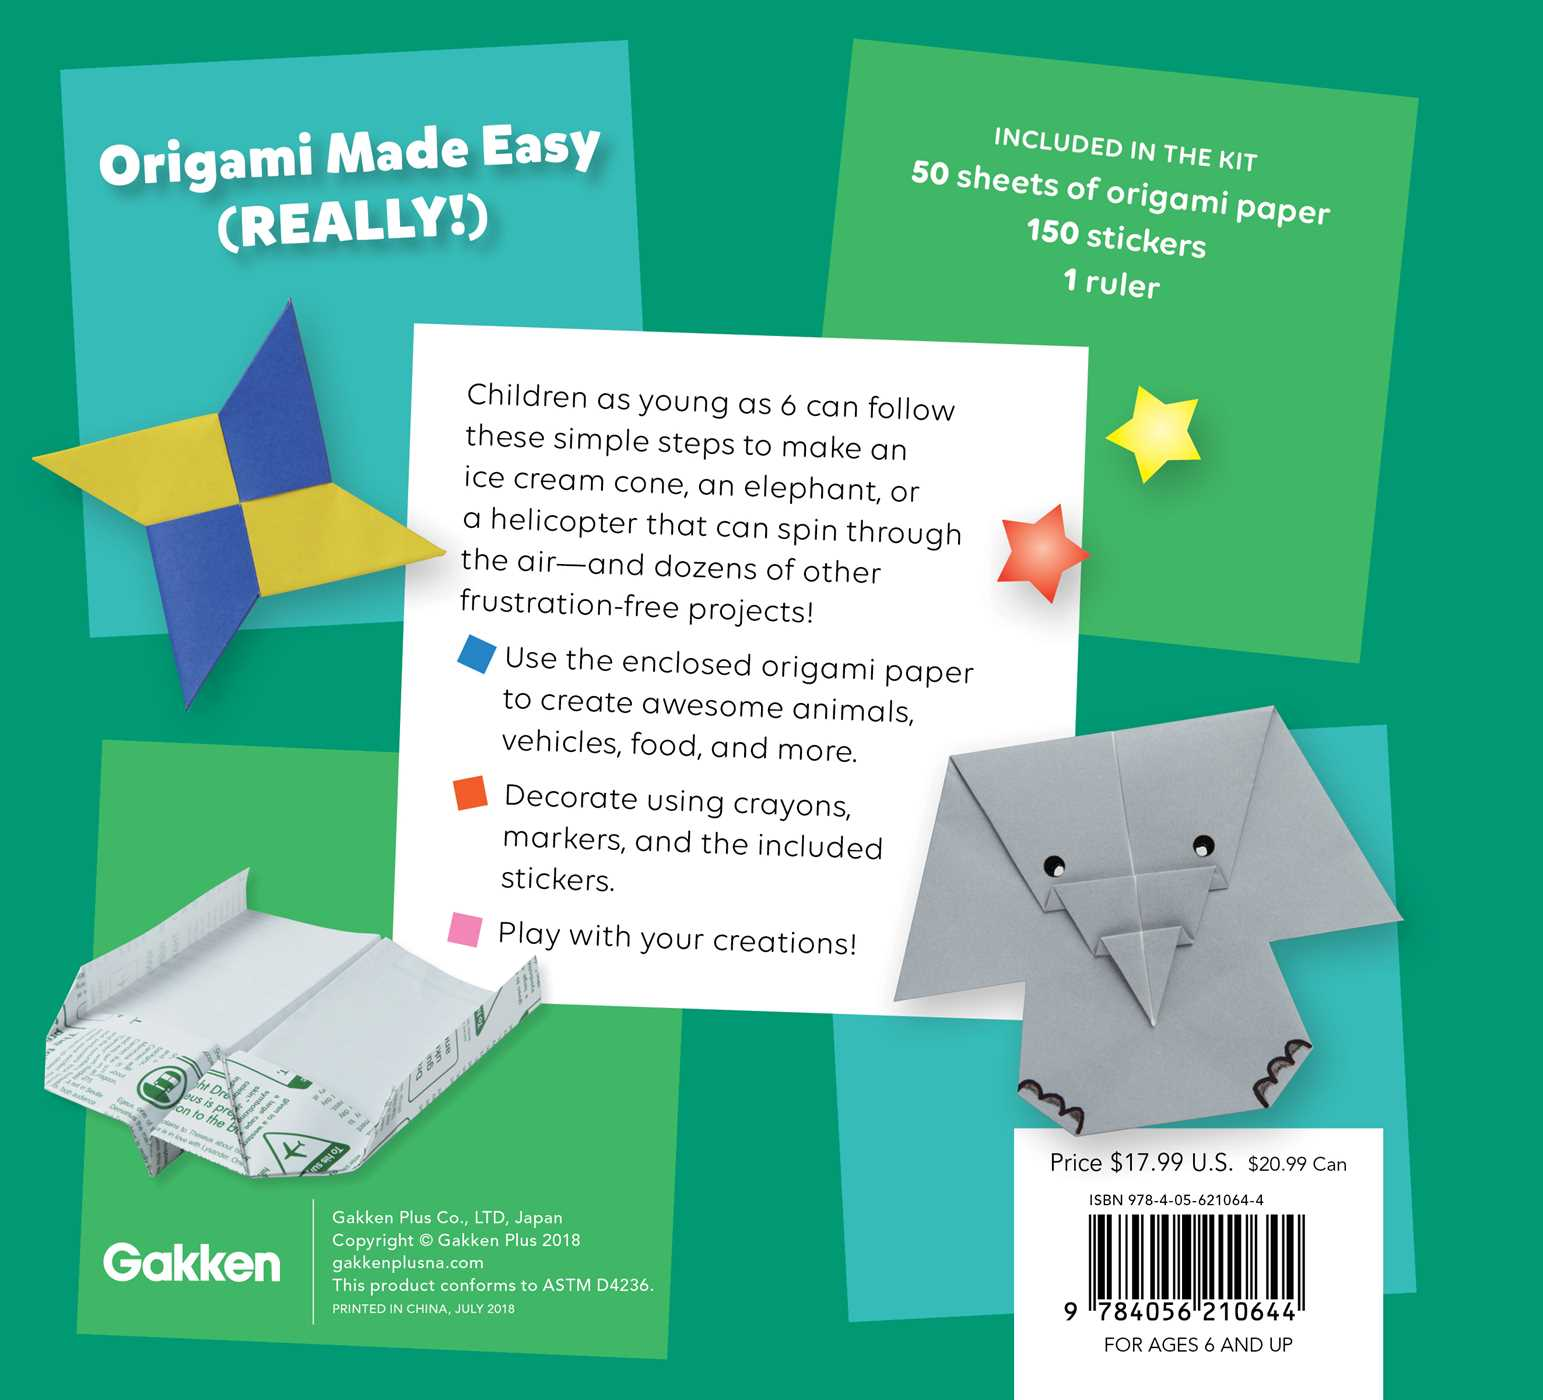 Origami Box Out Of A4 Paper Simple Images Cute Mouse Diagram Super 9784056210644 Hr Back